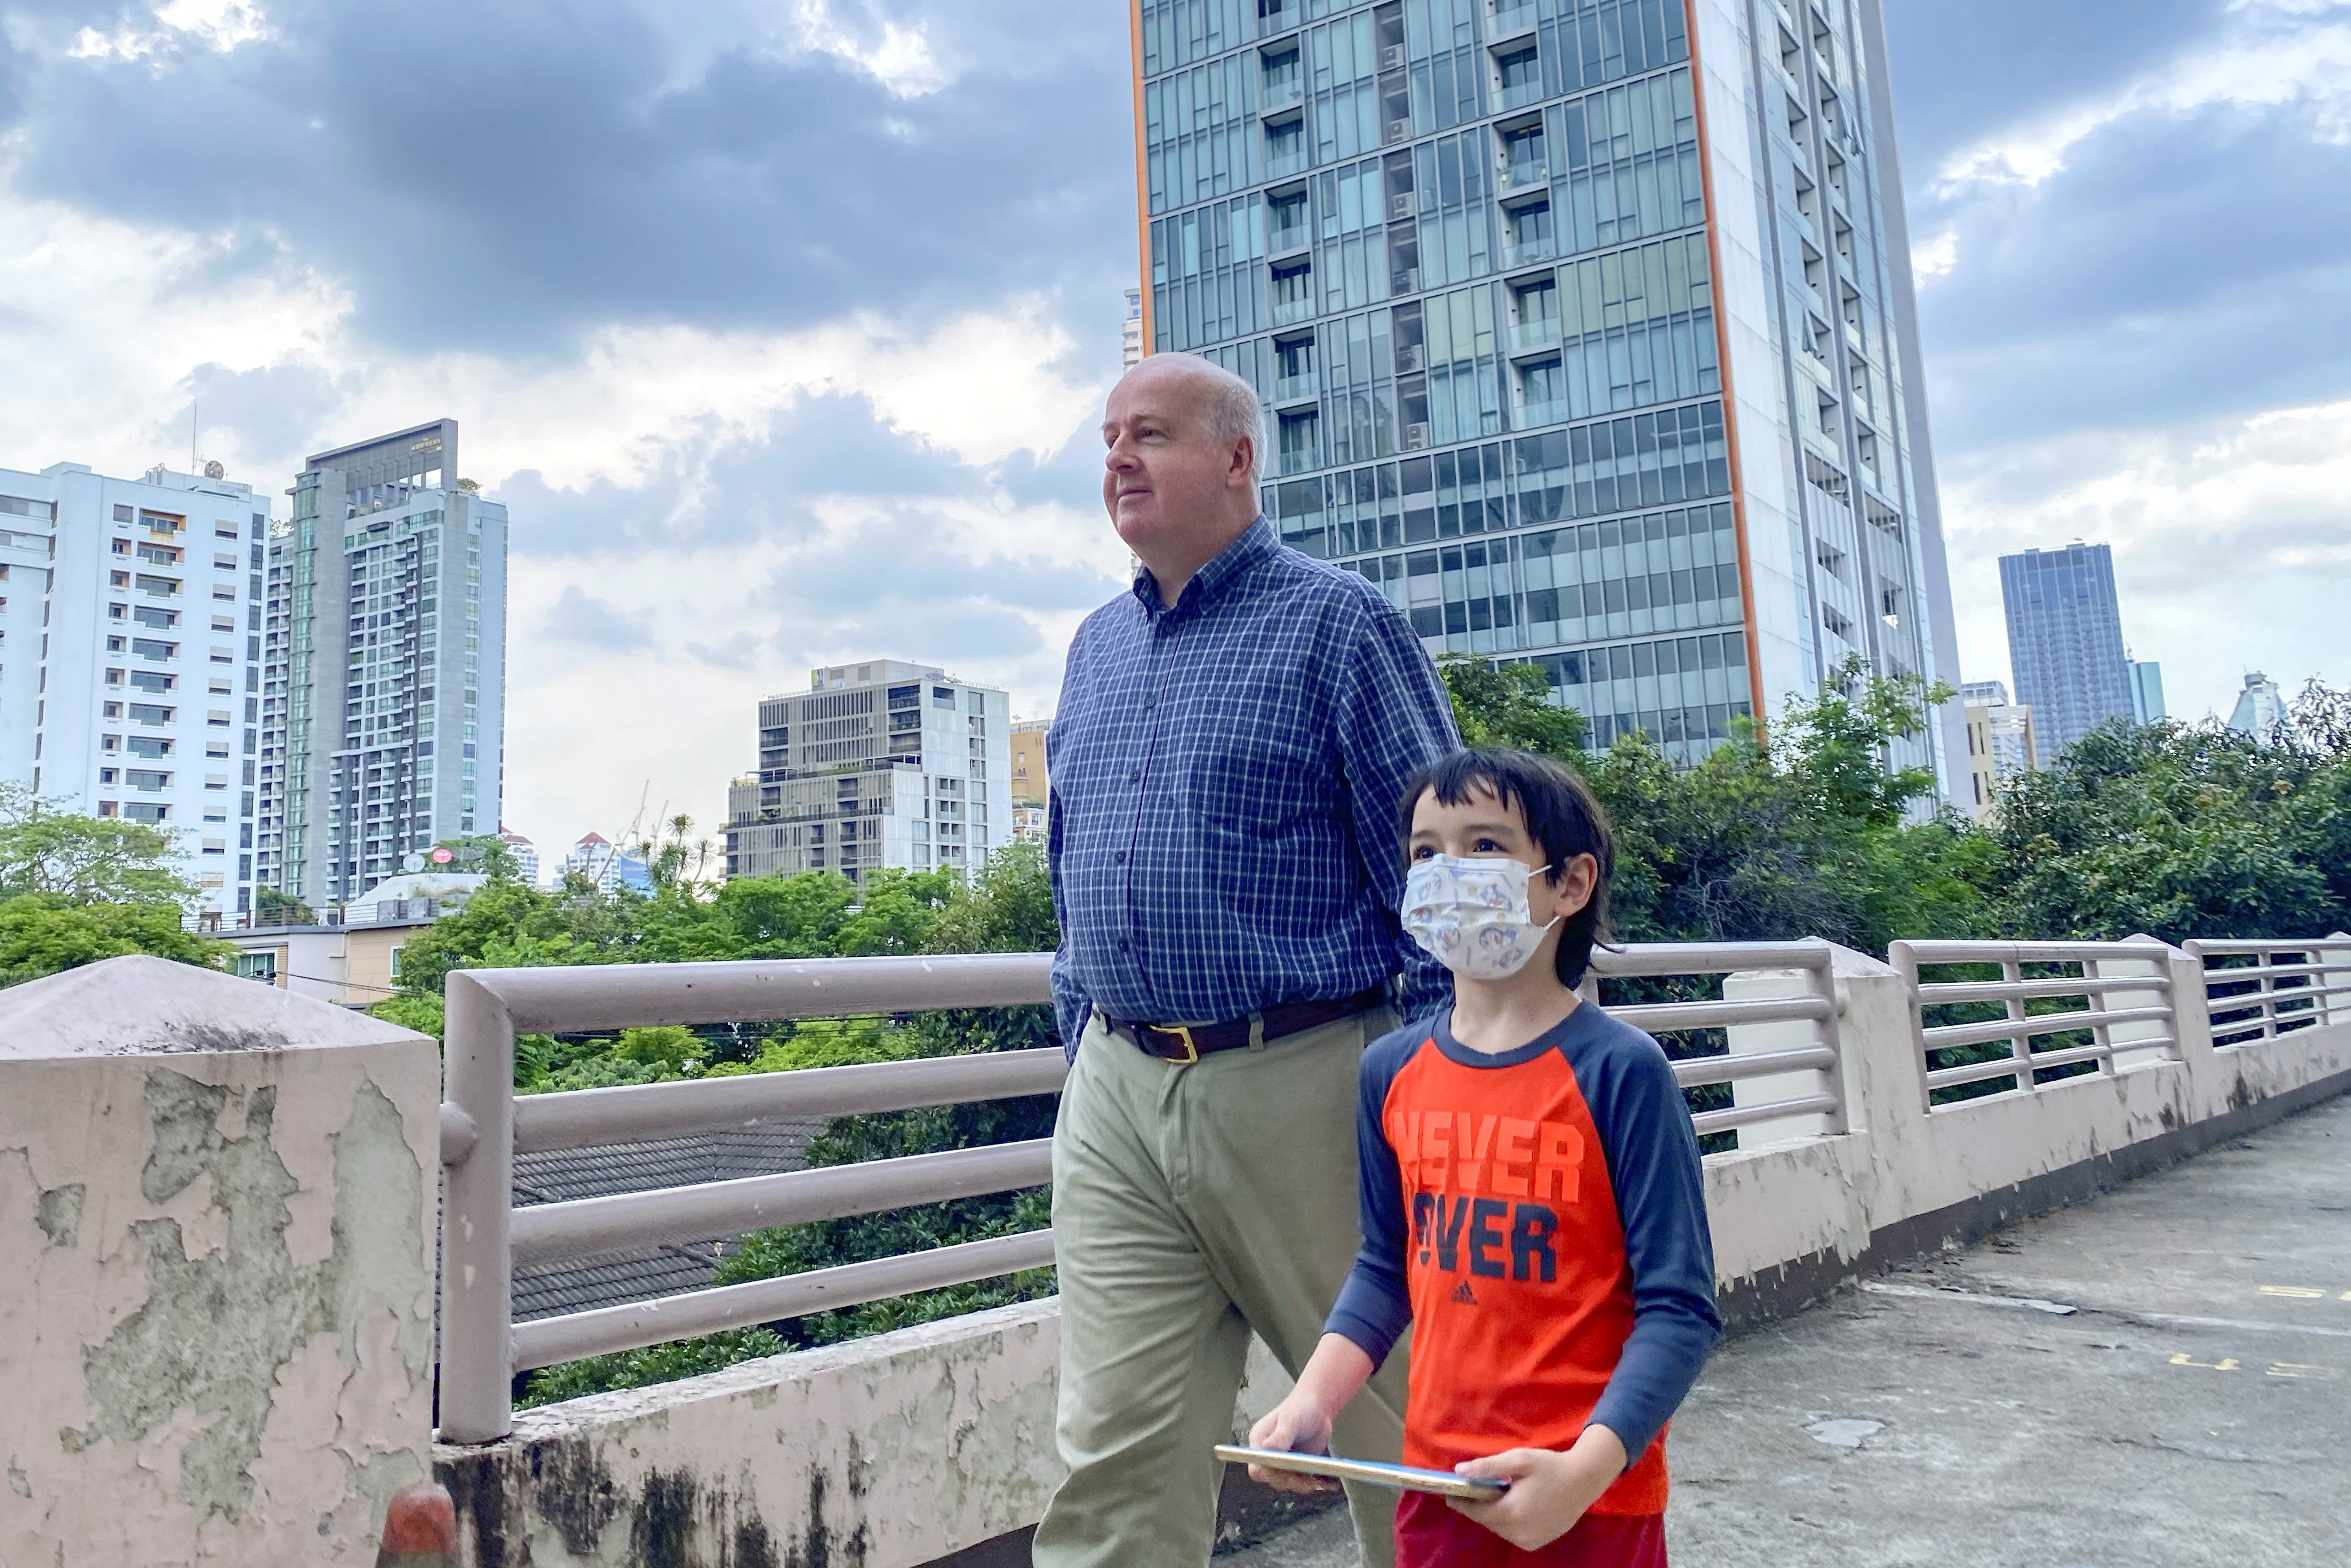 Paul Risley, a U.S. citizen chair of Democrats Abroad, walks with his son during an interview with Reuters in Bangkok, Thailand May 11, 2021.  REUTERS/Jiraporn Kuhakan